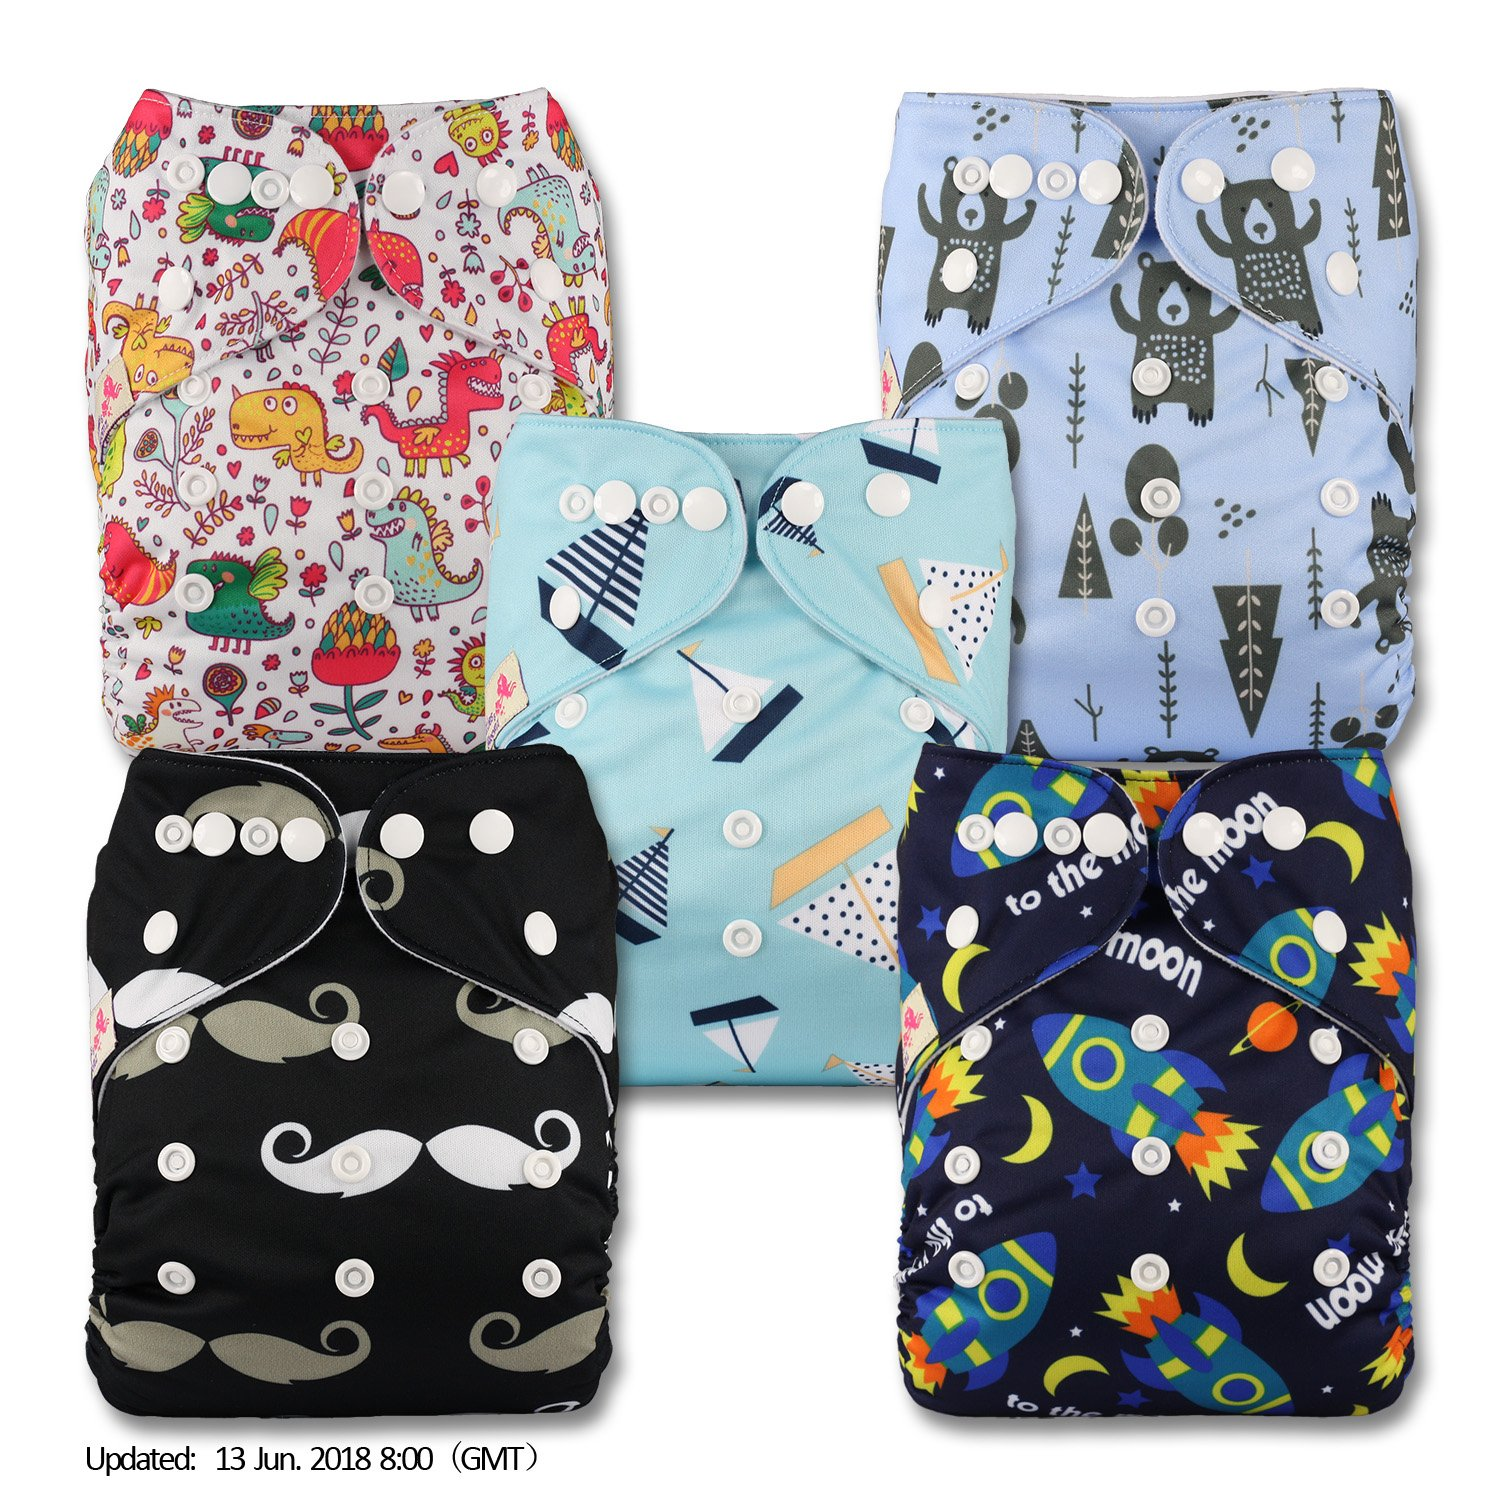 with 10 Bamboo Charcoal Inserts Set of 5 Patterns 513 Fastener: Popper Reusable Pocket Cloth Nappy Littles /& Bloomz